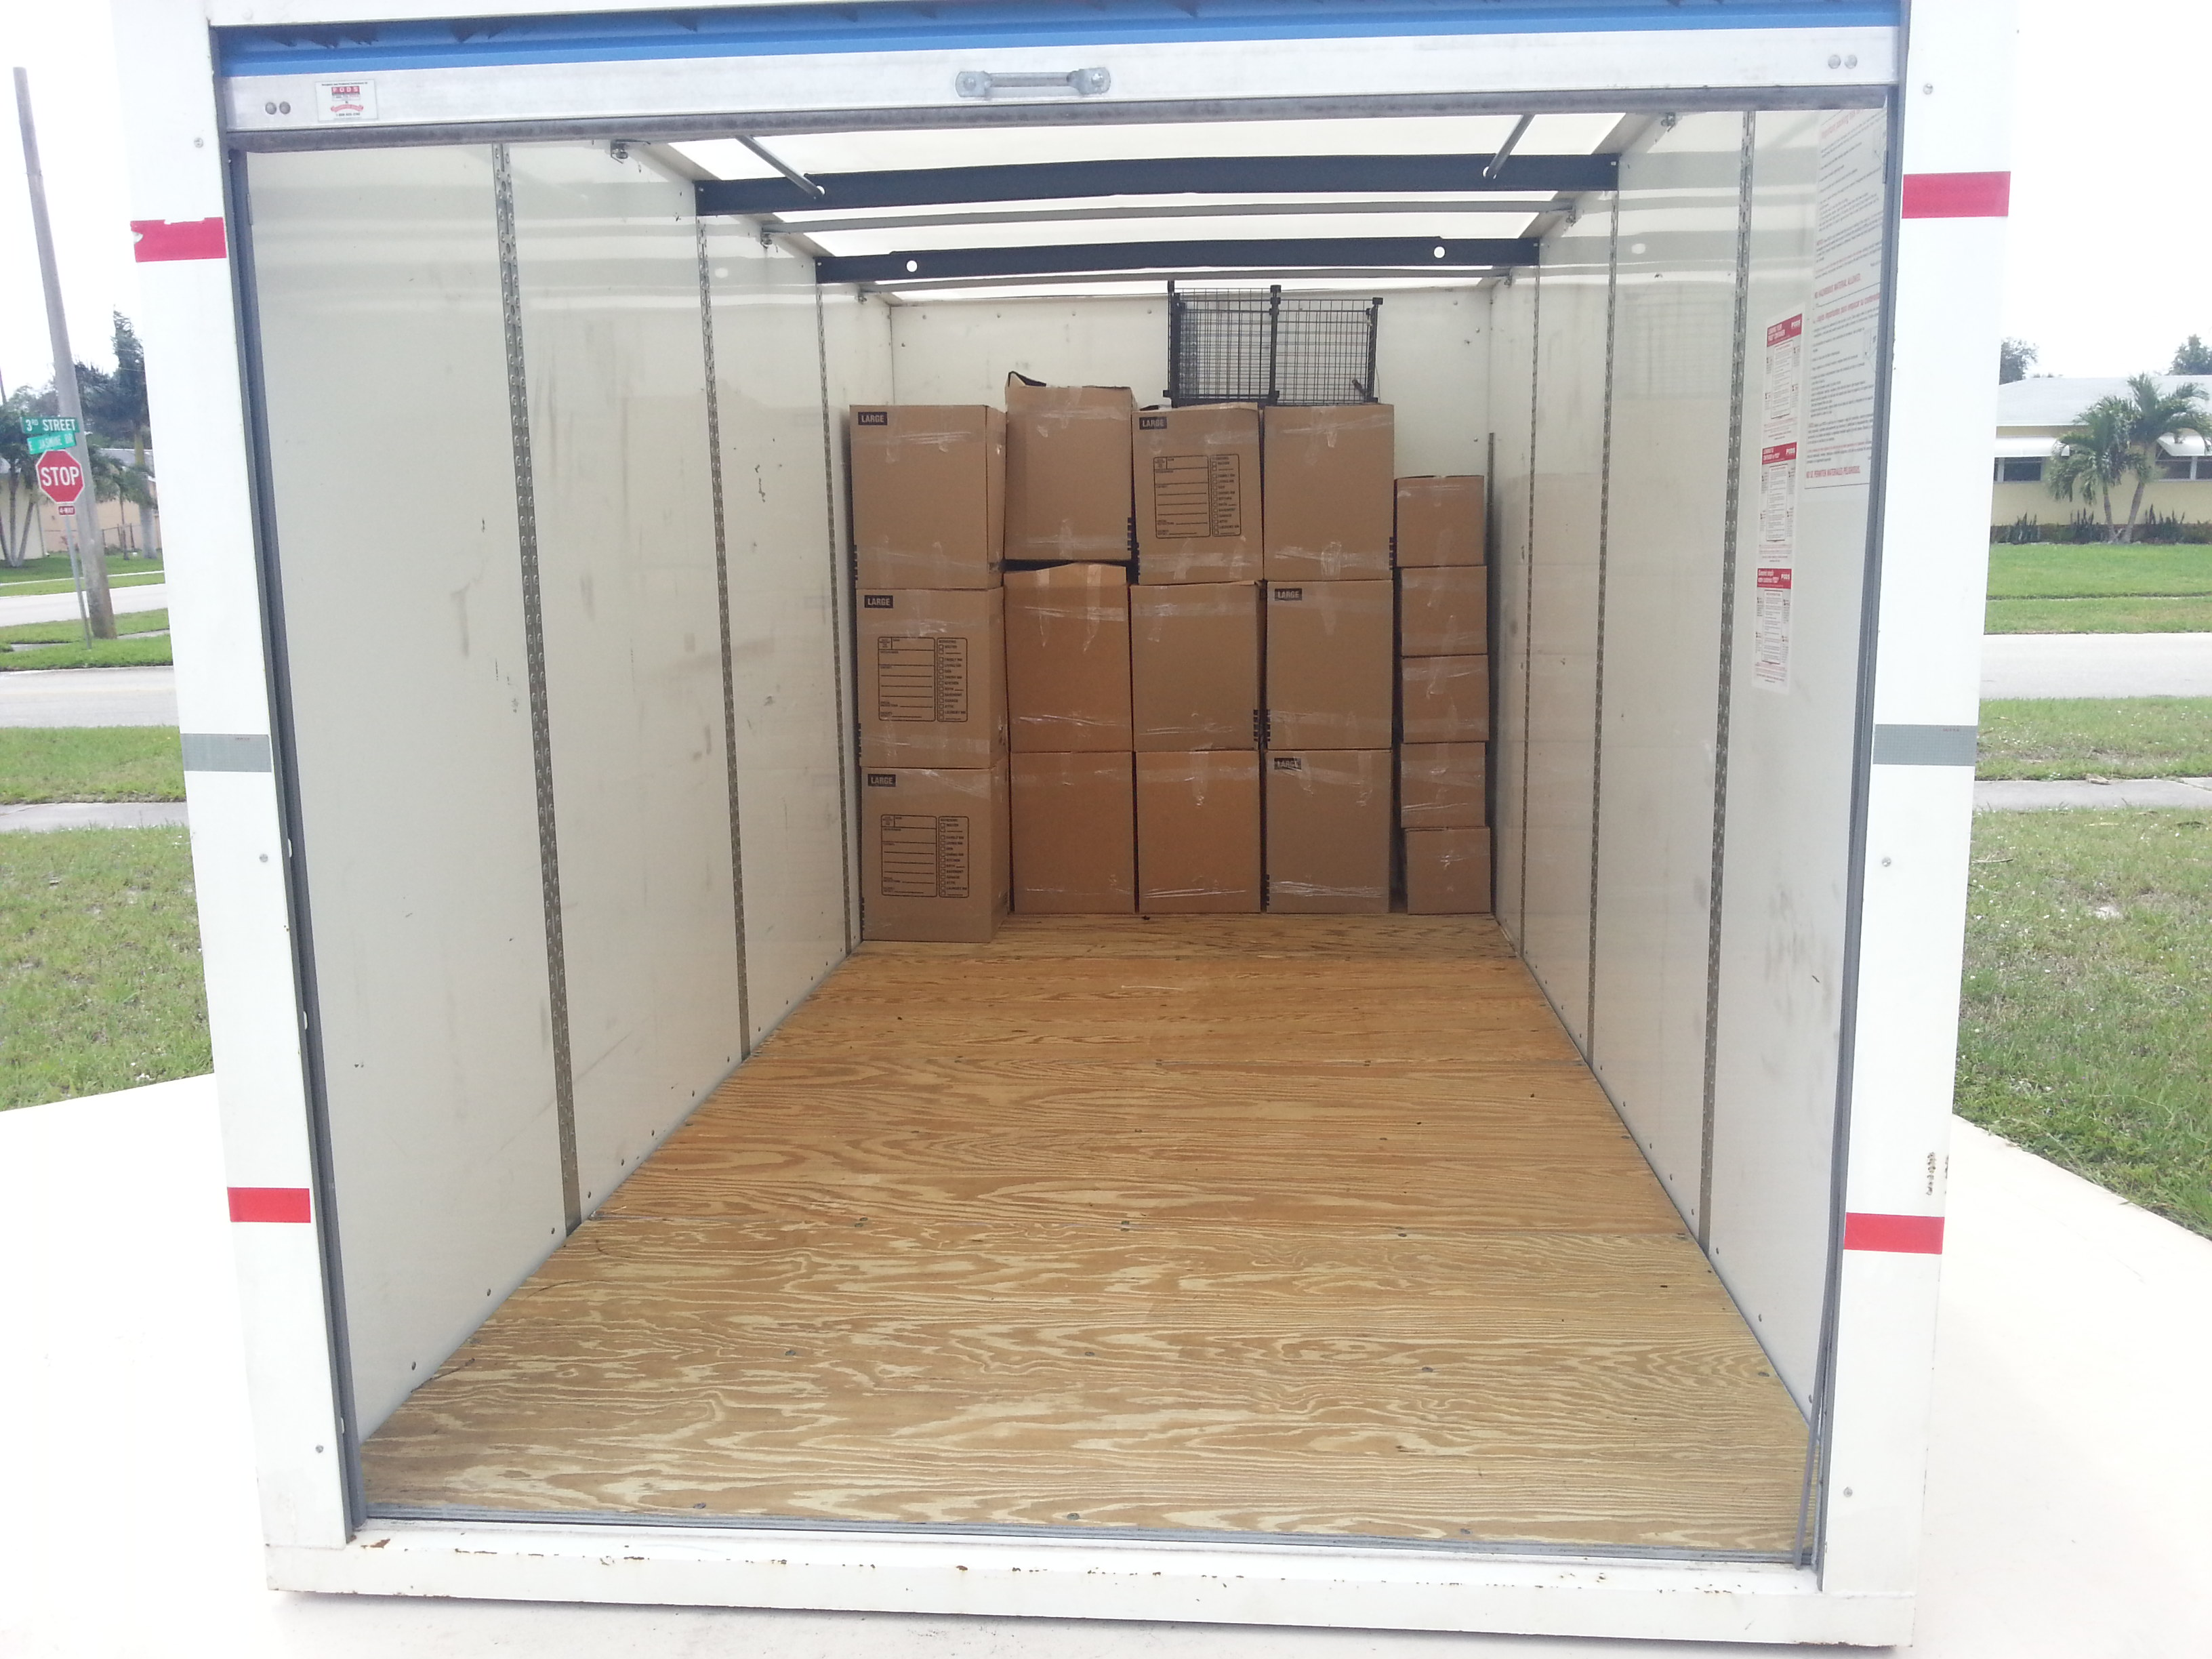 When packing and loading pods containers and rental trucks; the professional Packing and Loading staff at Packing Service, Inc. always make sure to be careful with all customer items and take the necessary precautions to load them in the safest and most secure way.